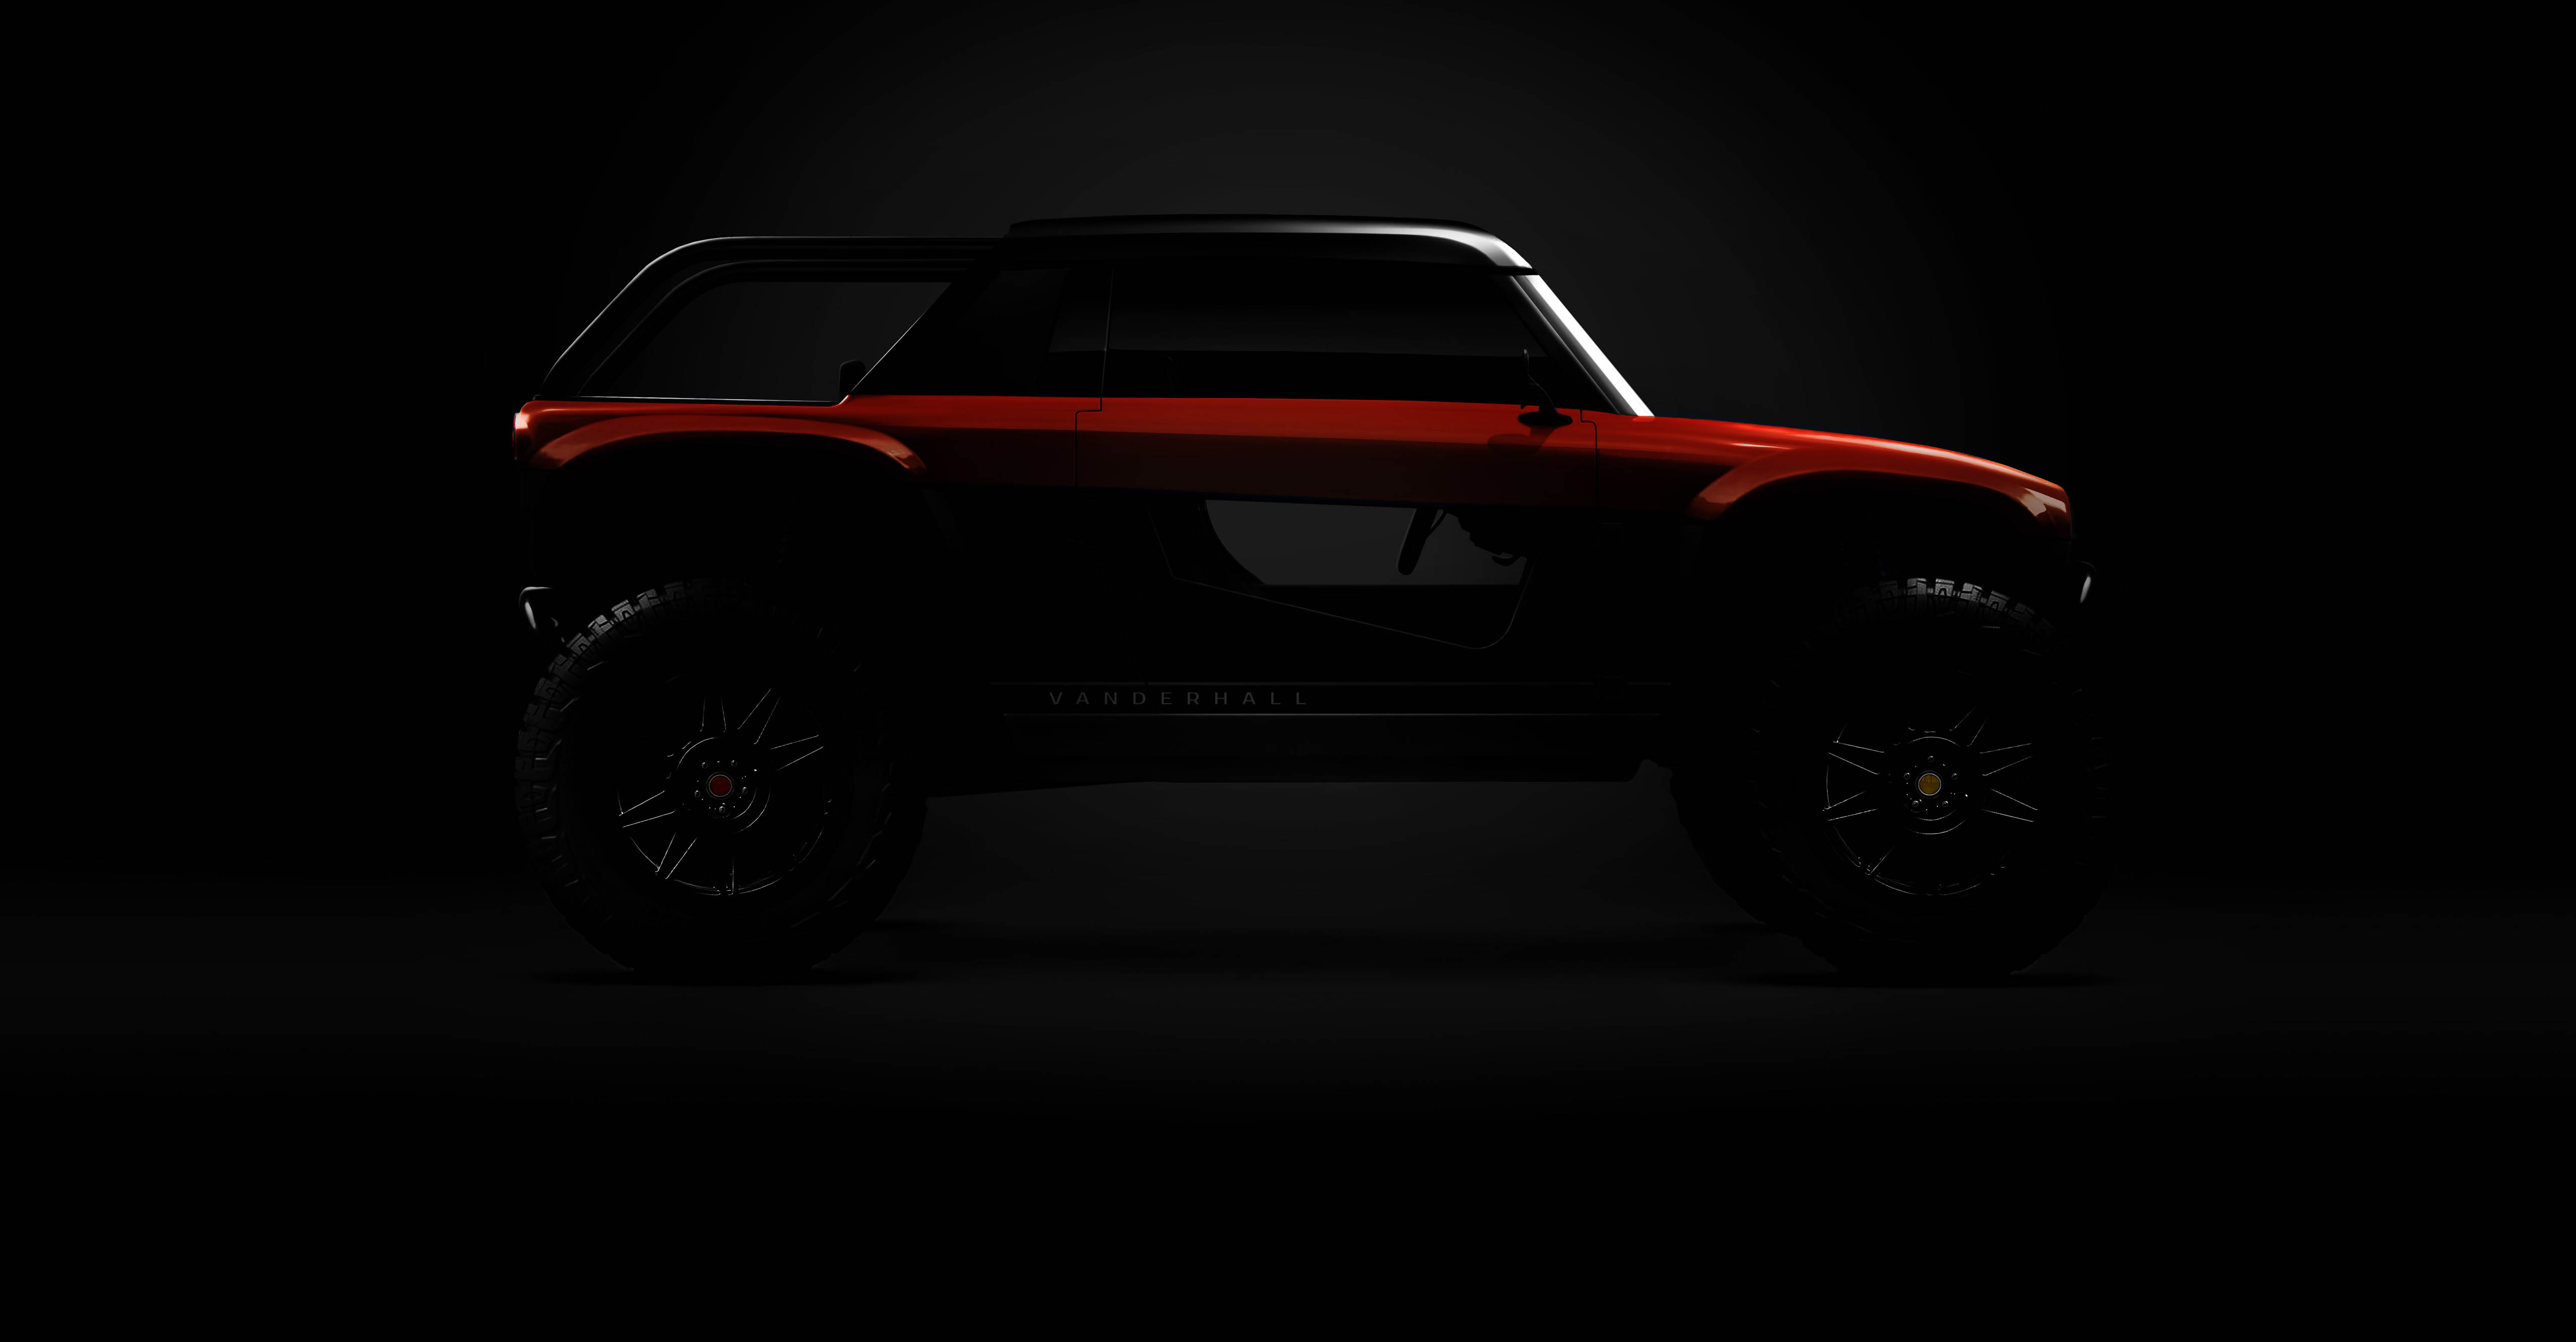 The Navarro appears shaped more like a street-legal 4x4 but optimized for off-road more like an off-highway vehicle (OHV)